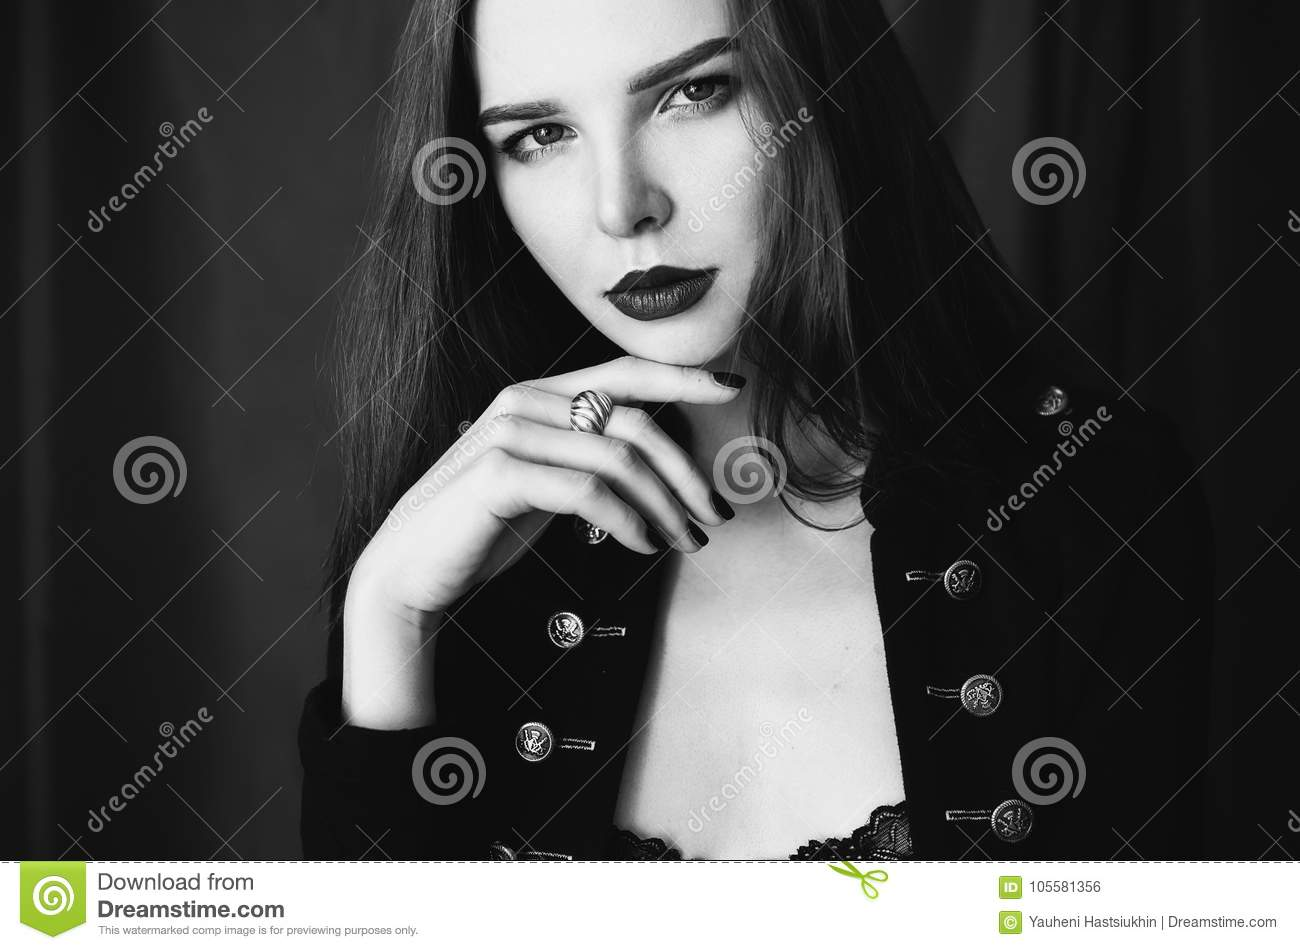 Artistic black and white photography unusual appearance stock photo